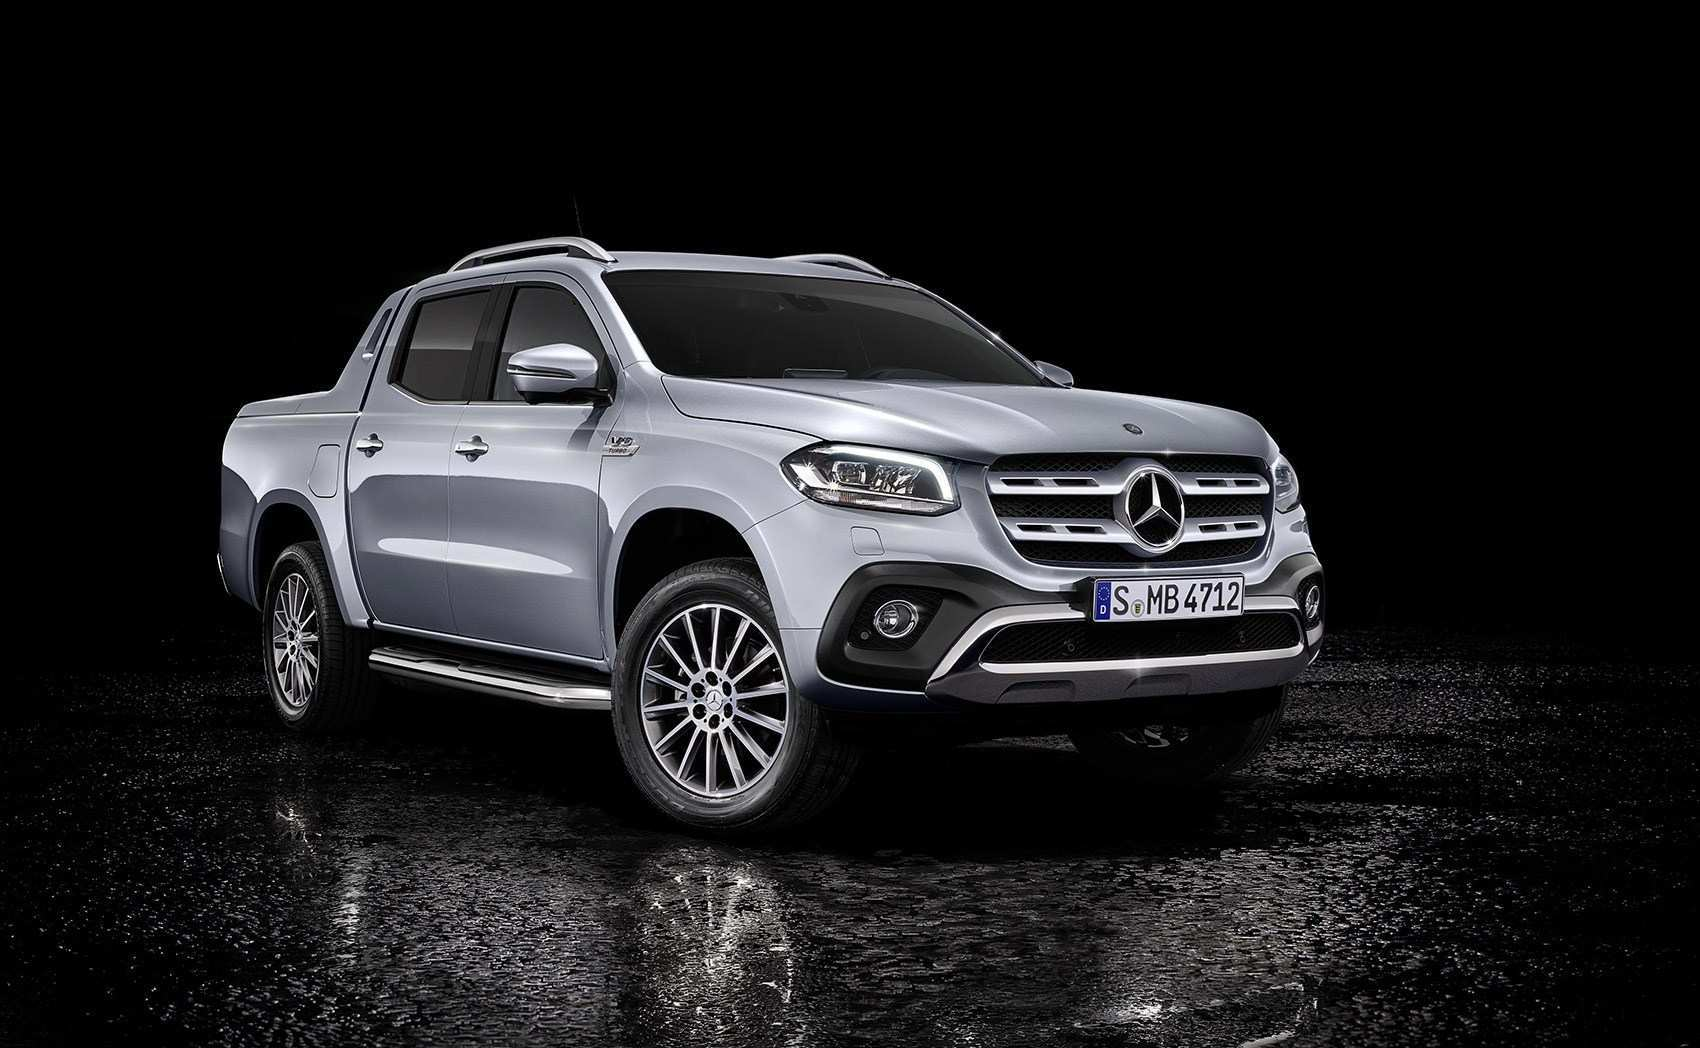 49 All New New 2019 Mercedes Ute Review And Specs Wallpaper with New 2019 Mercedes Ute Review And Specs